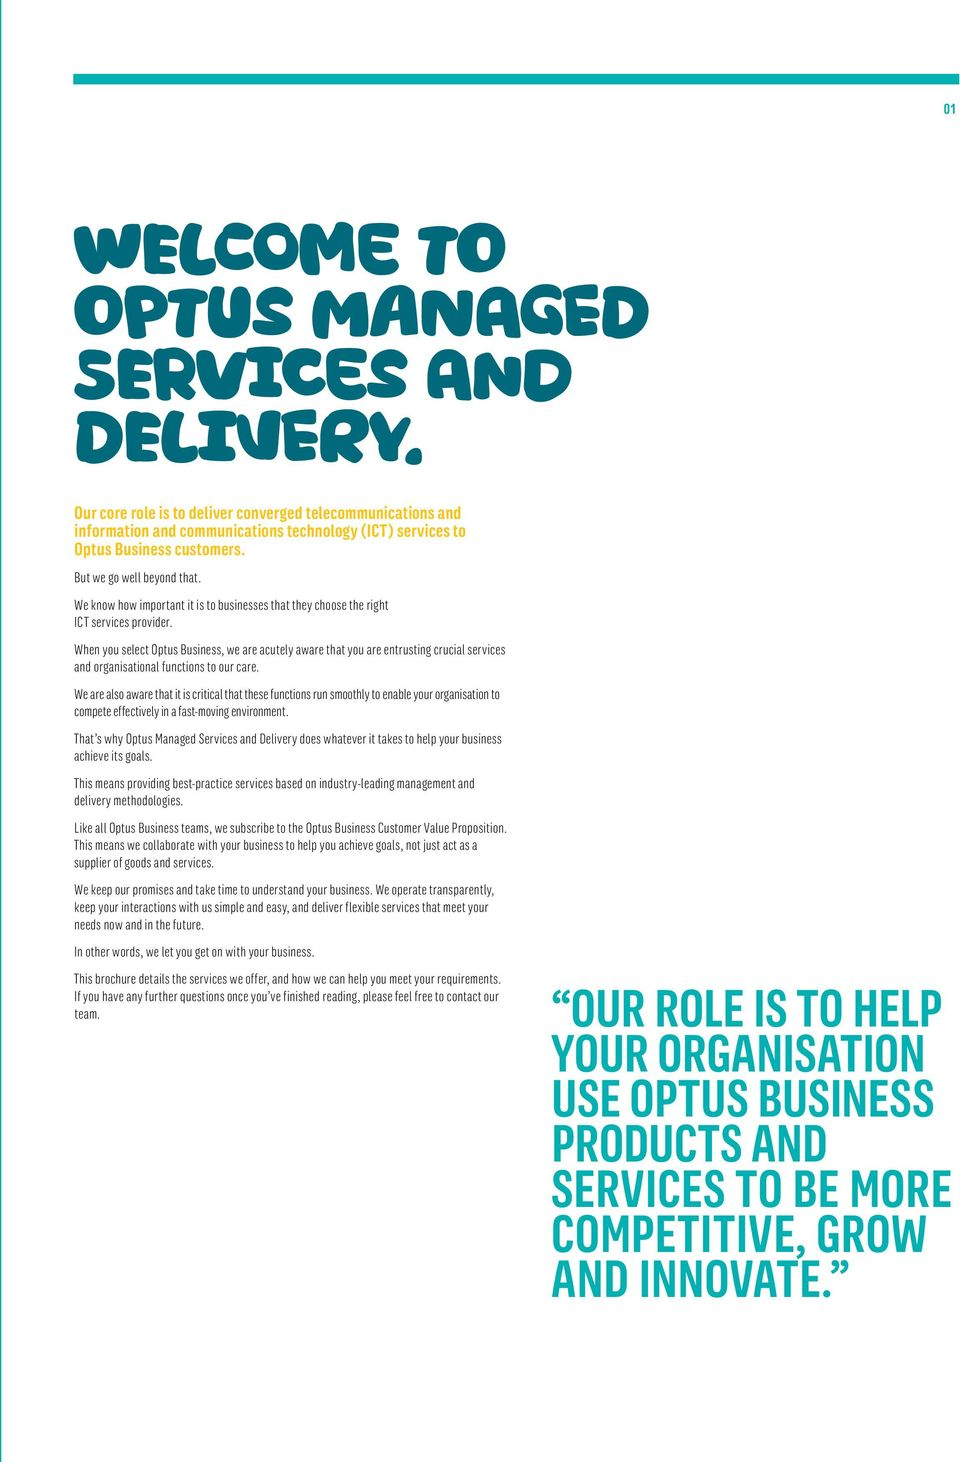 When you select Optus Business, we are acutely aware that you are entrusting crucial services and organisational functions to our care.